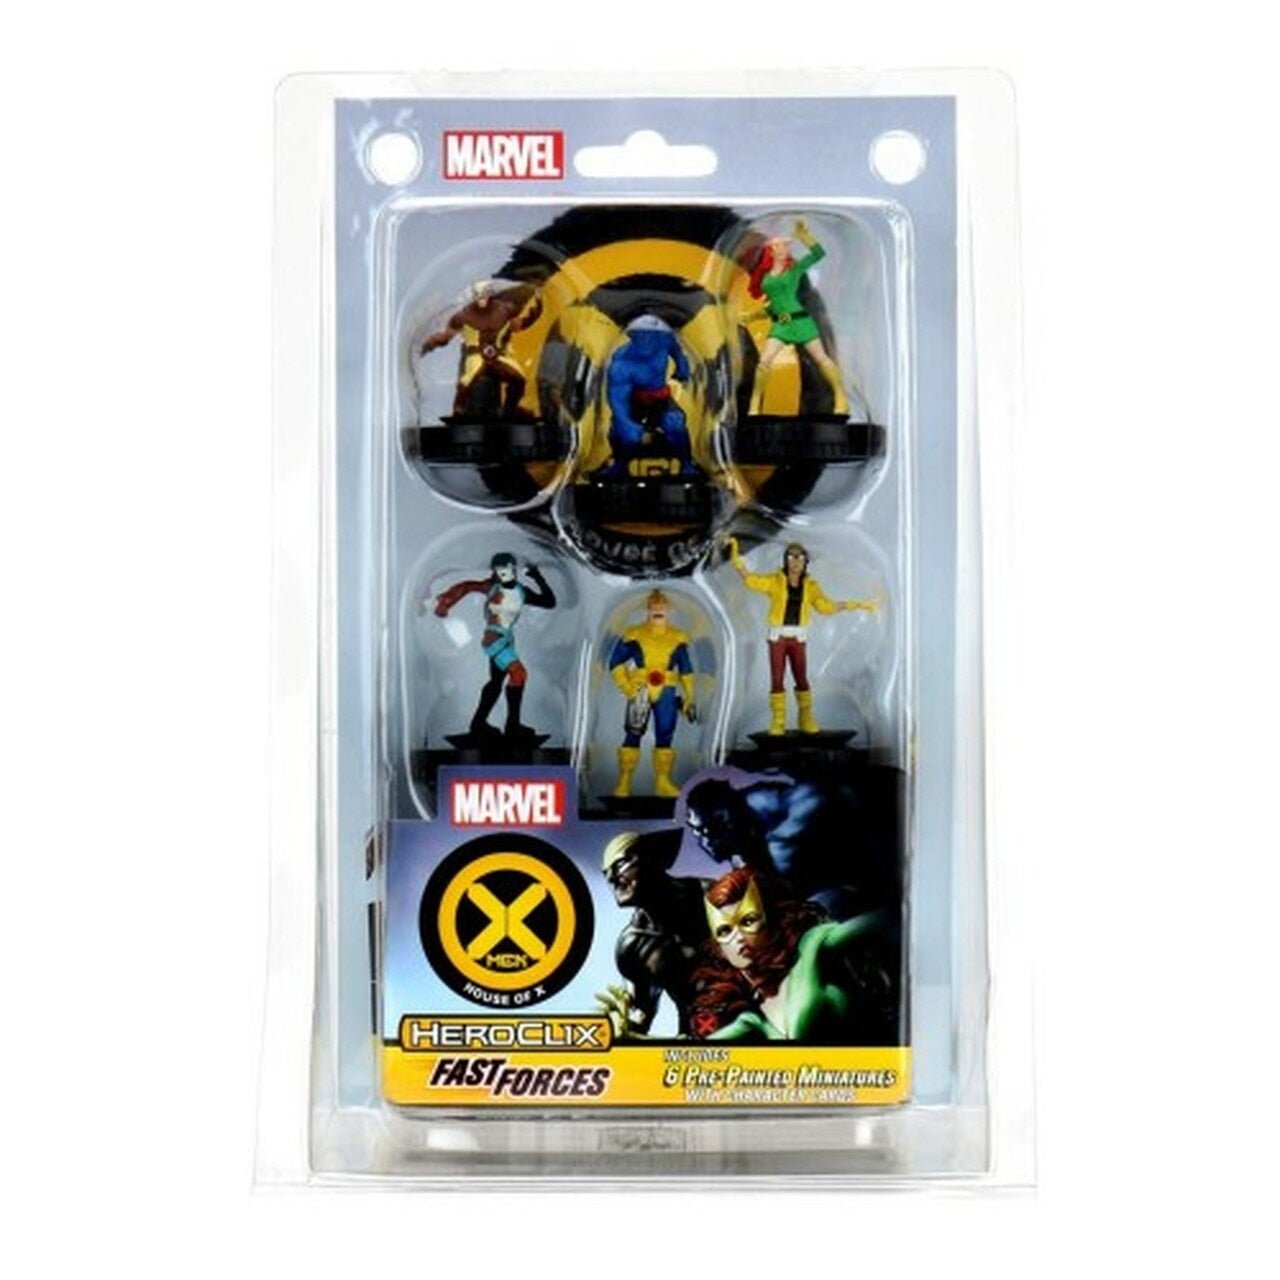 Marvel HeroClix - X-Men: House of X - Fast Forces